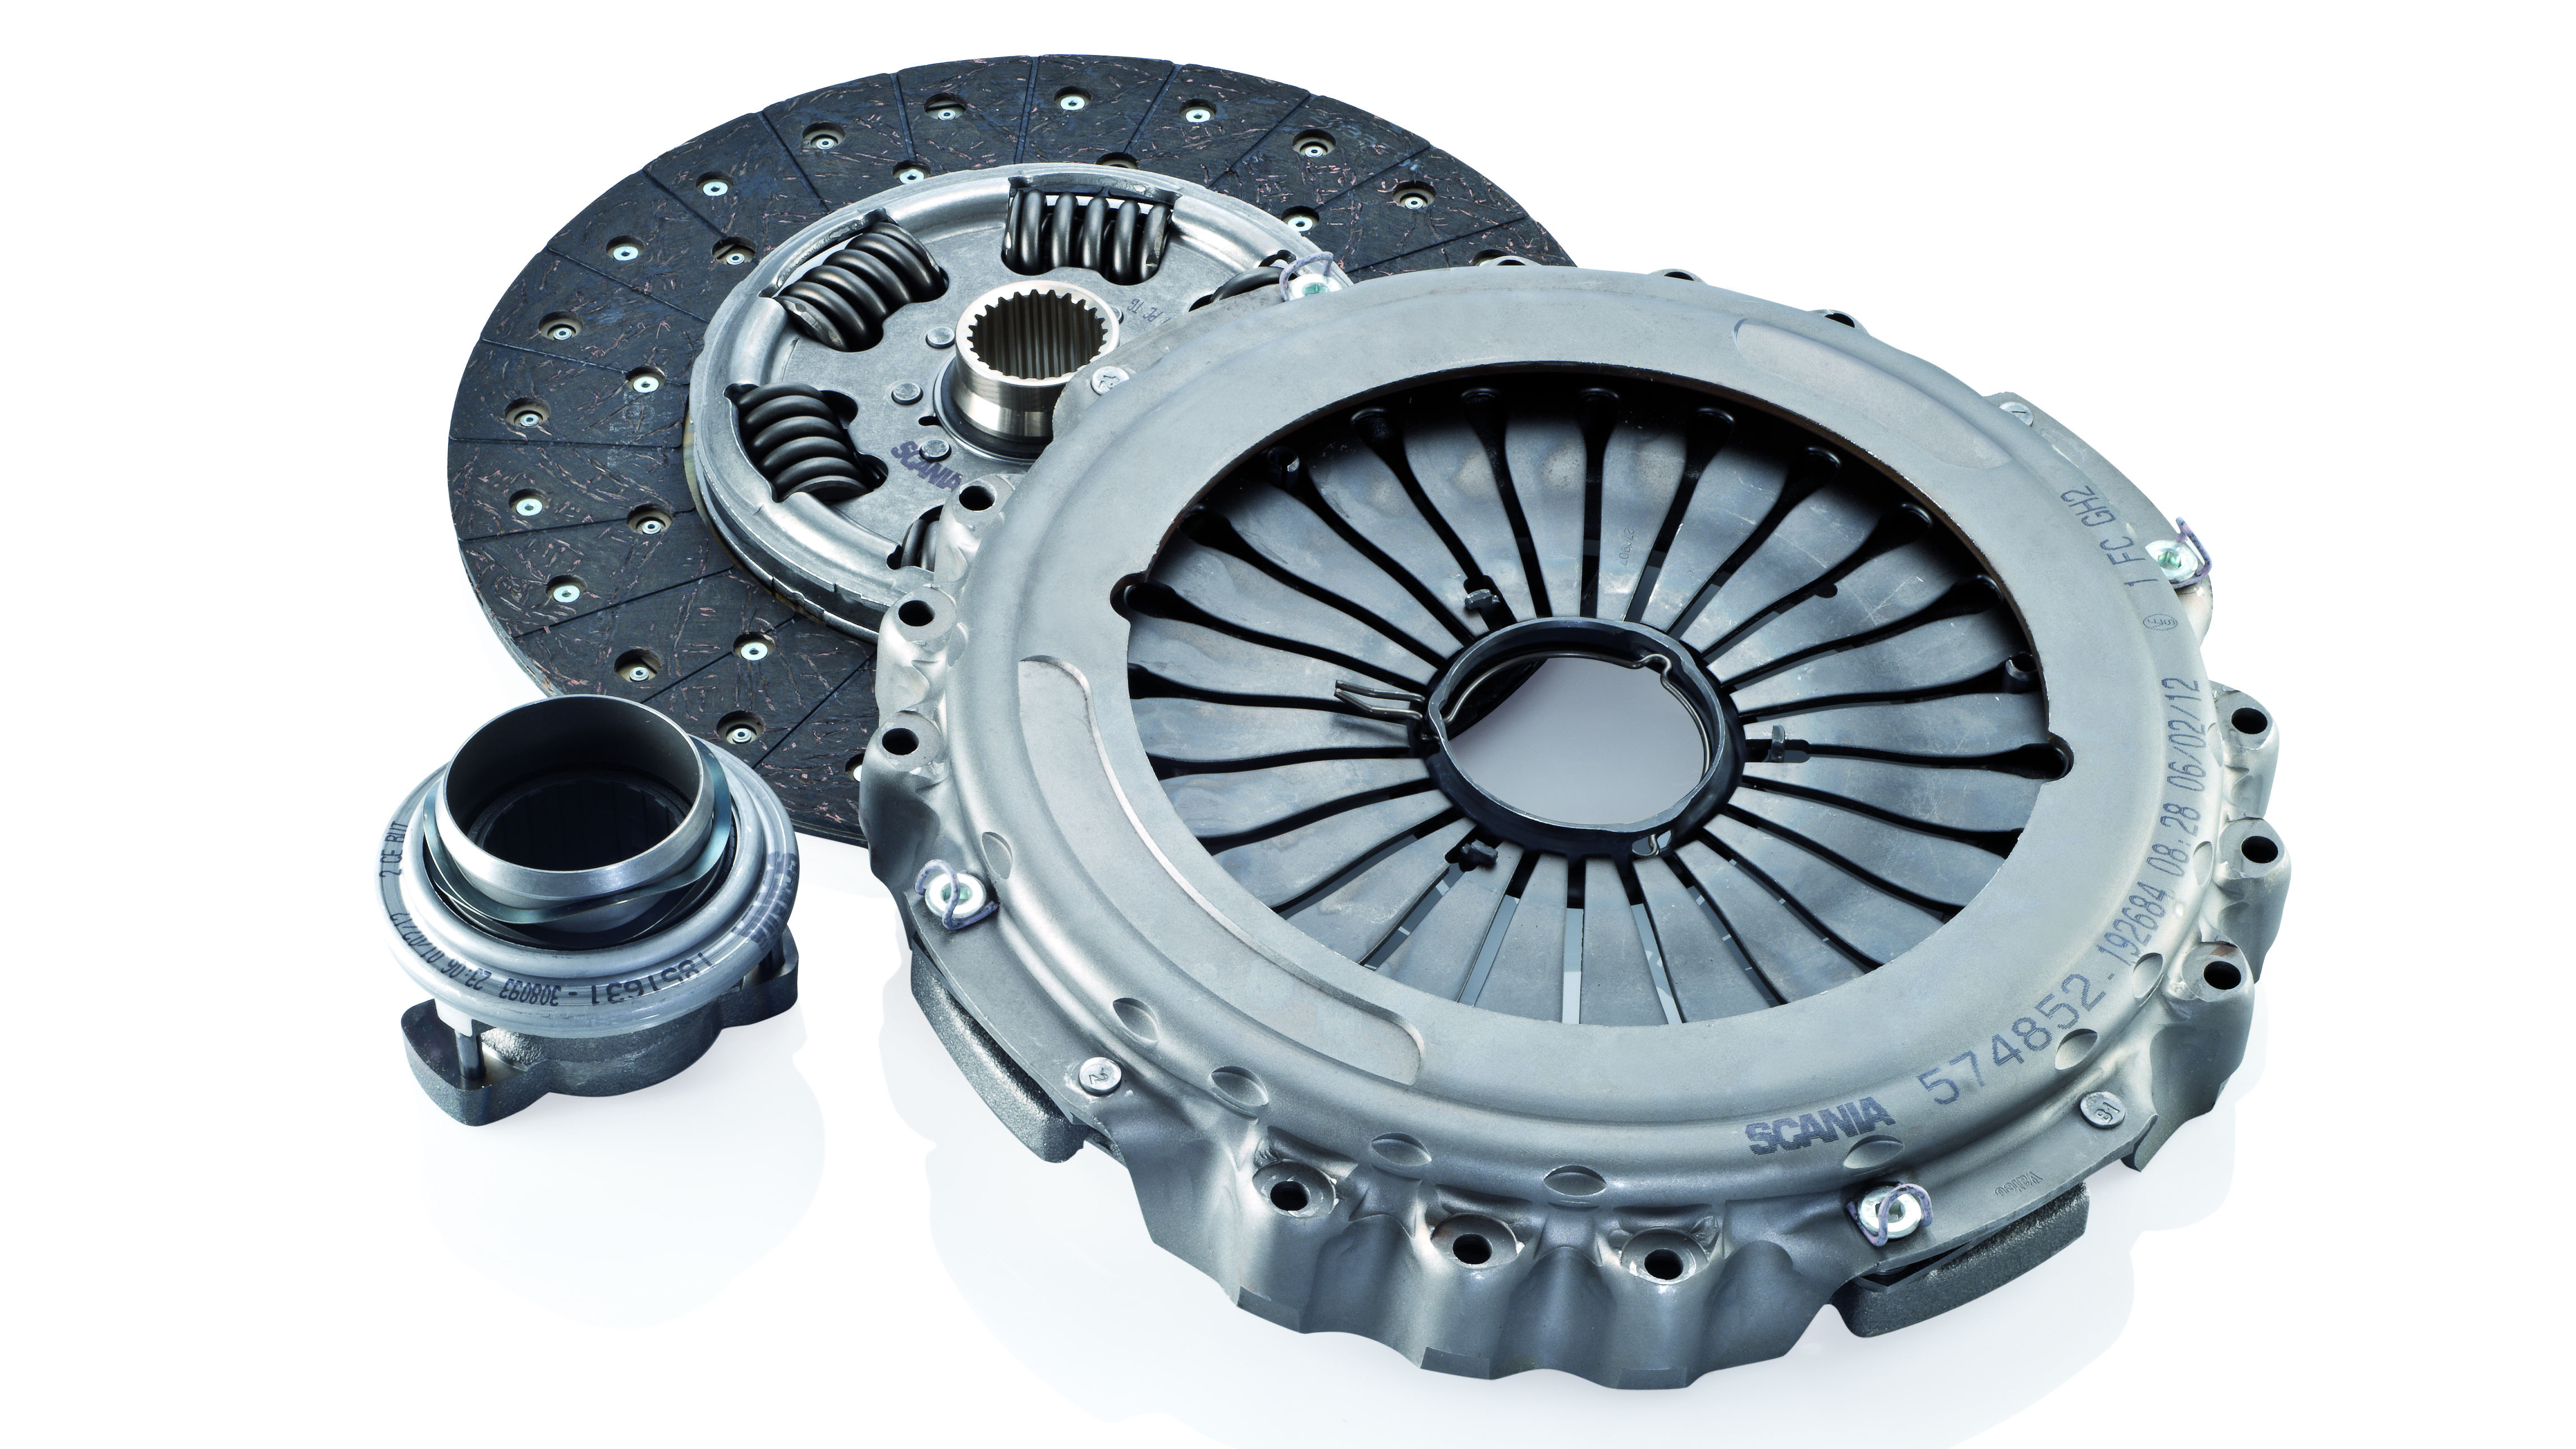 Clutch kit from Scania